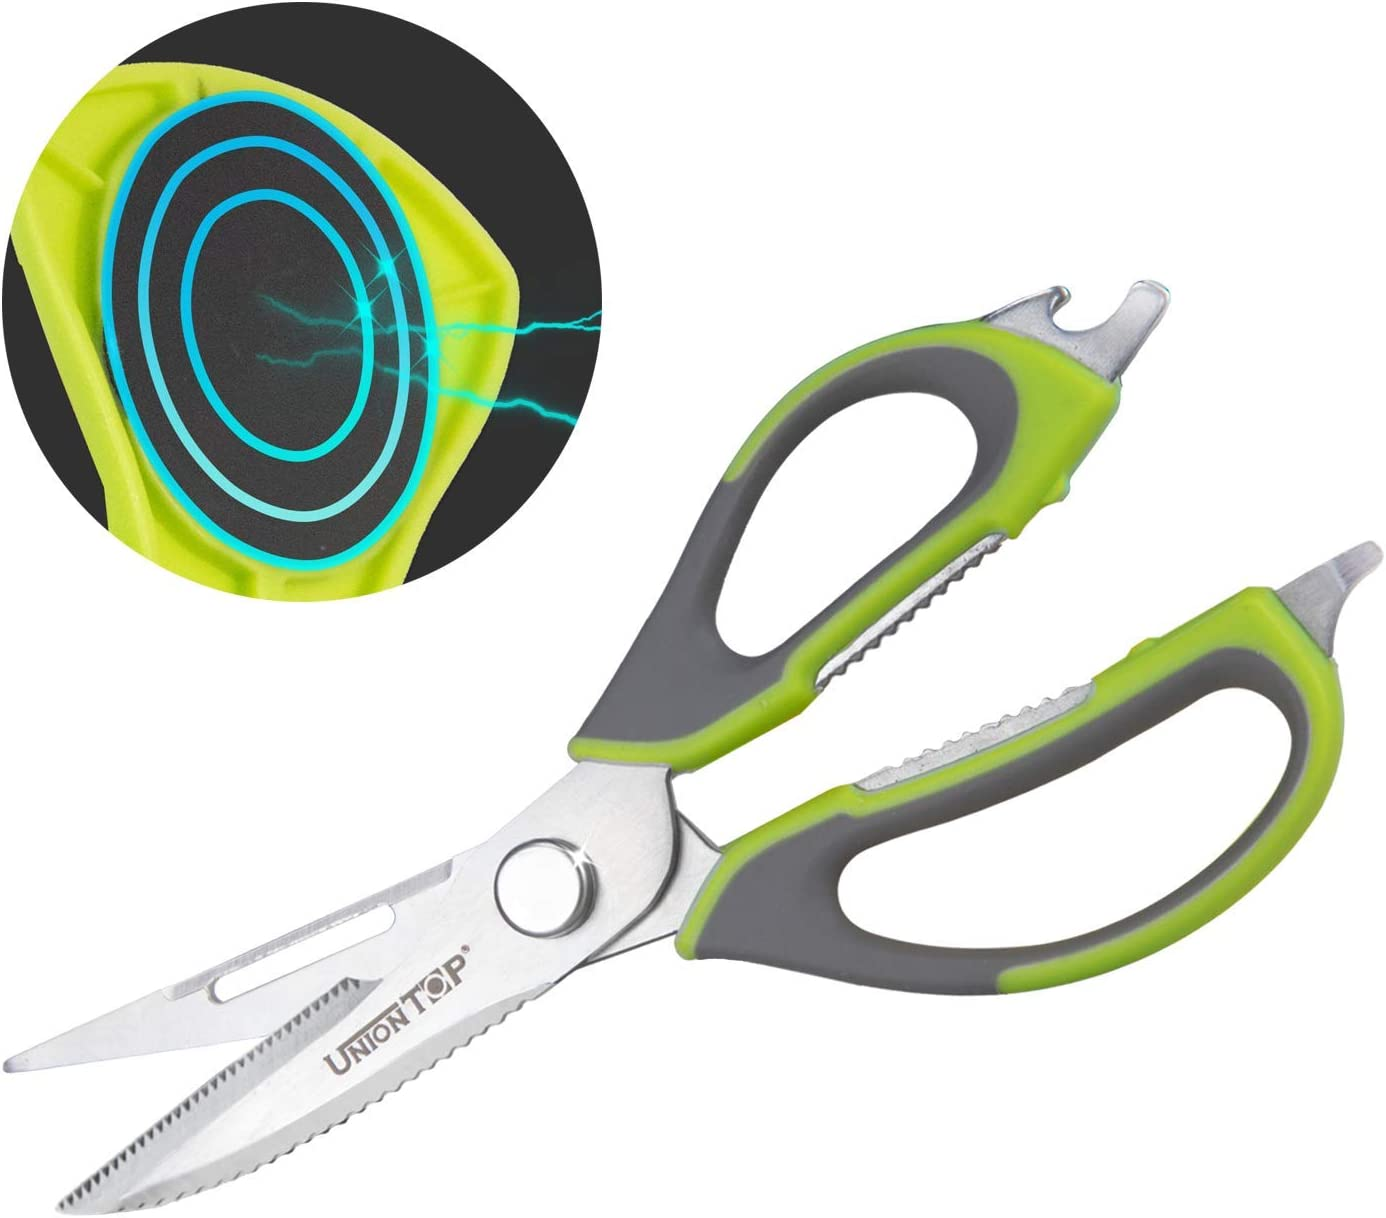 Green Shears Stainless Steel Kitchen Cooking Food Scissors Dishwasher Safe Heavy Duty Meat Scissors Sharp Shears for Herbs, Fish, Poultry, Vegetables, BBQ, Chicken, Come Apart Scissors W/ Sheath